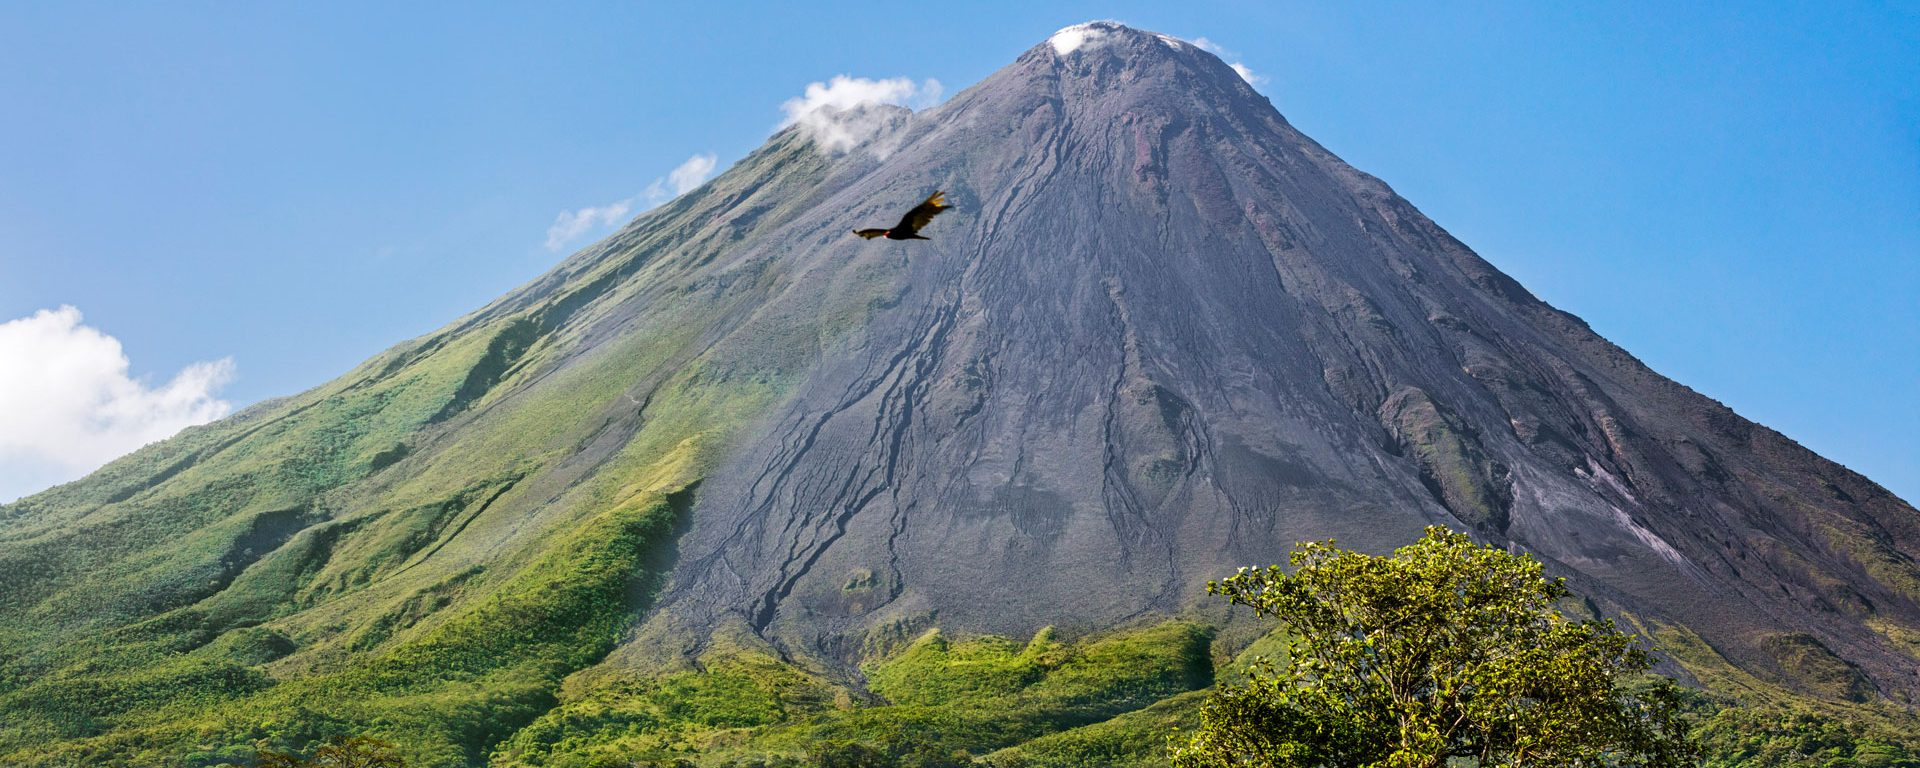 Arenal Volcano with steam rising from its peak, Alajuela Province, Arenal, Costa Rica